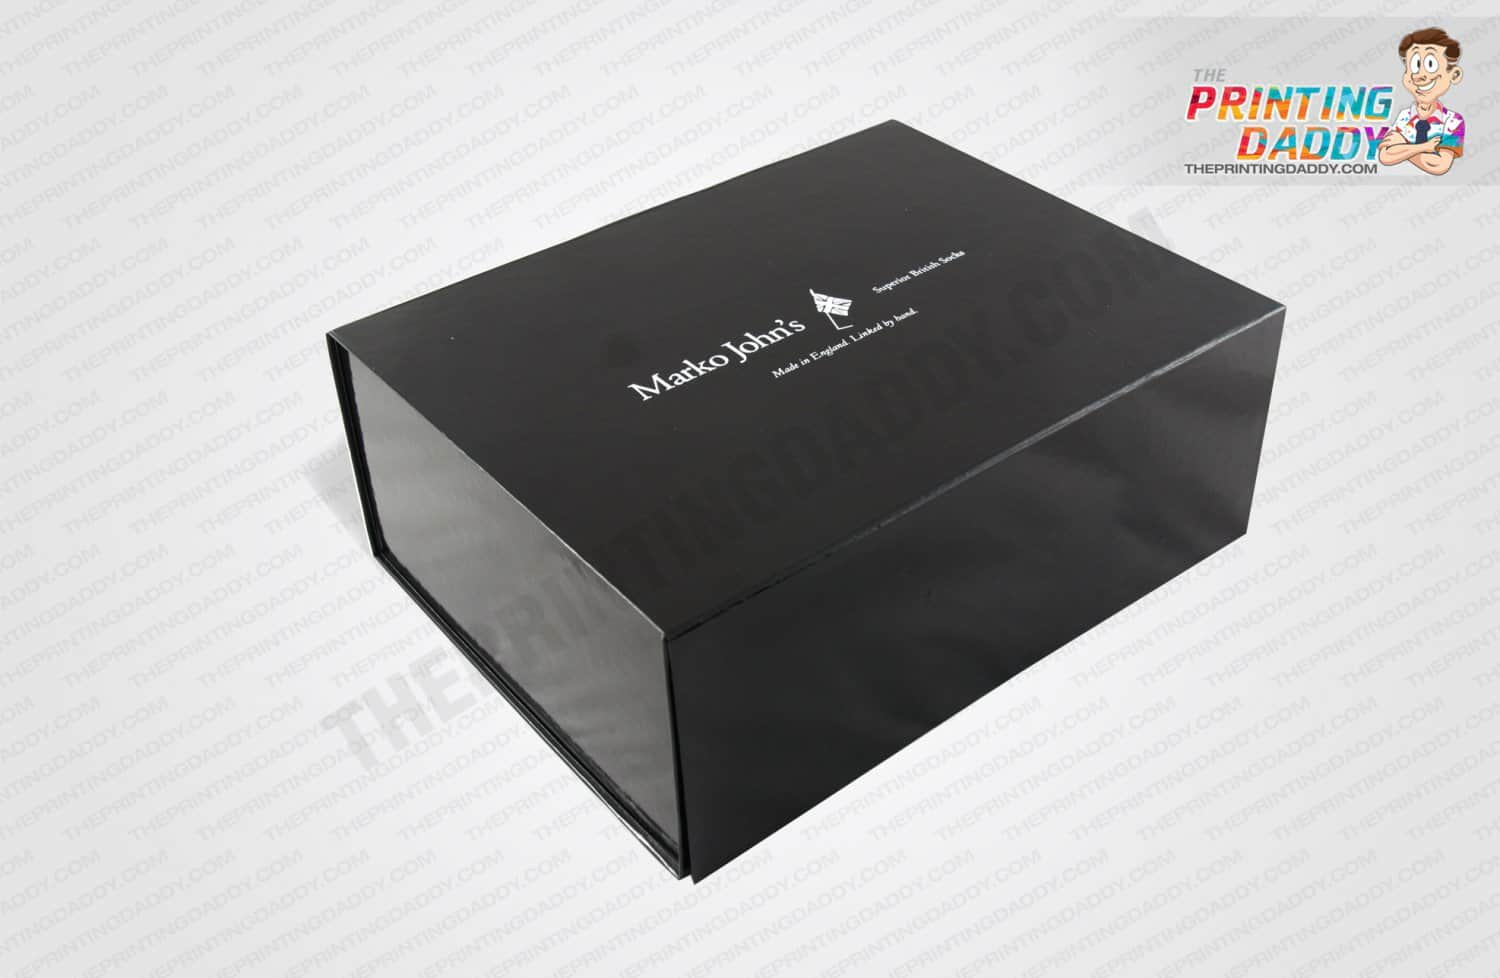 Black & White Printed Slotted Box The Printing Daddy